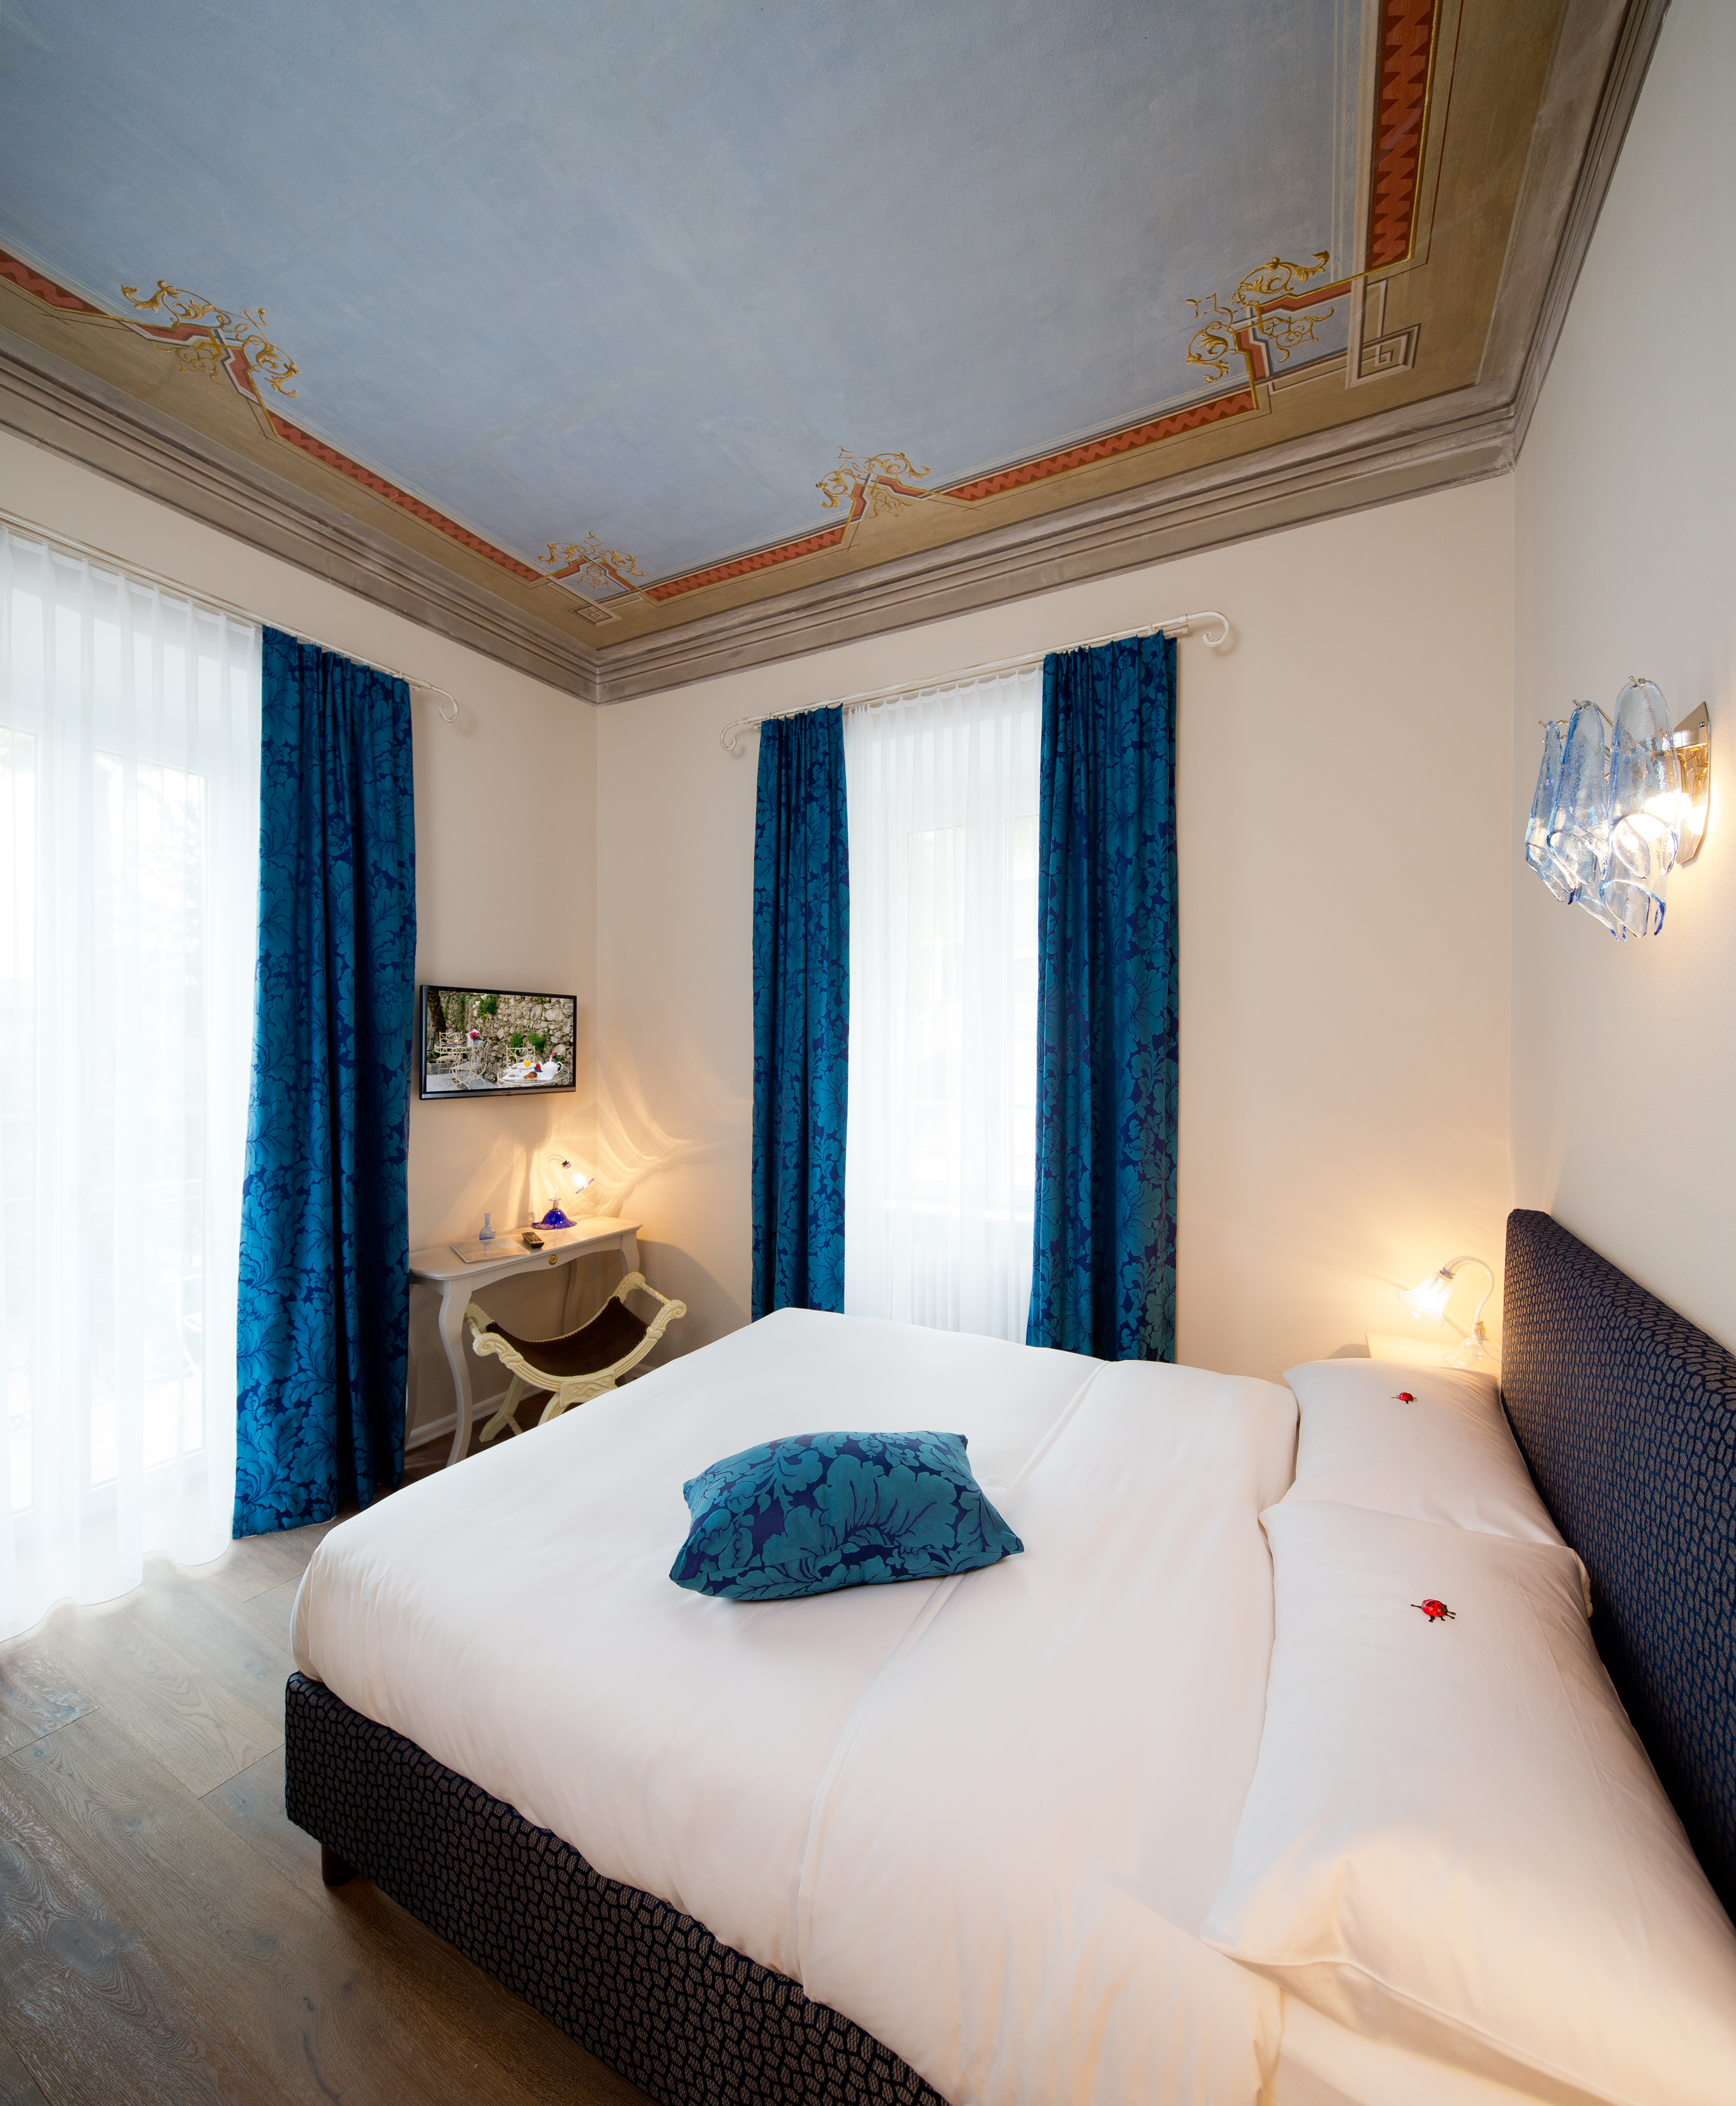 Albergo Villa Sarnia - rooms lookup 15